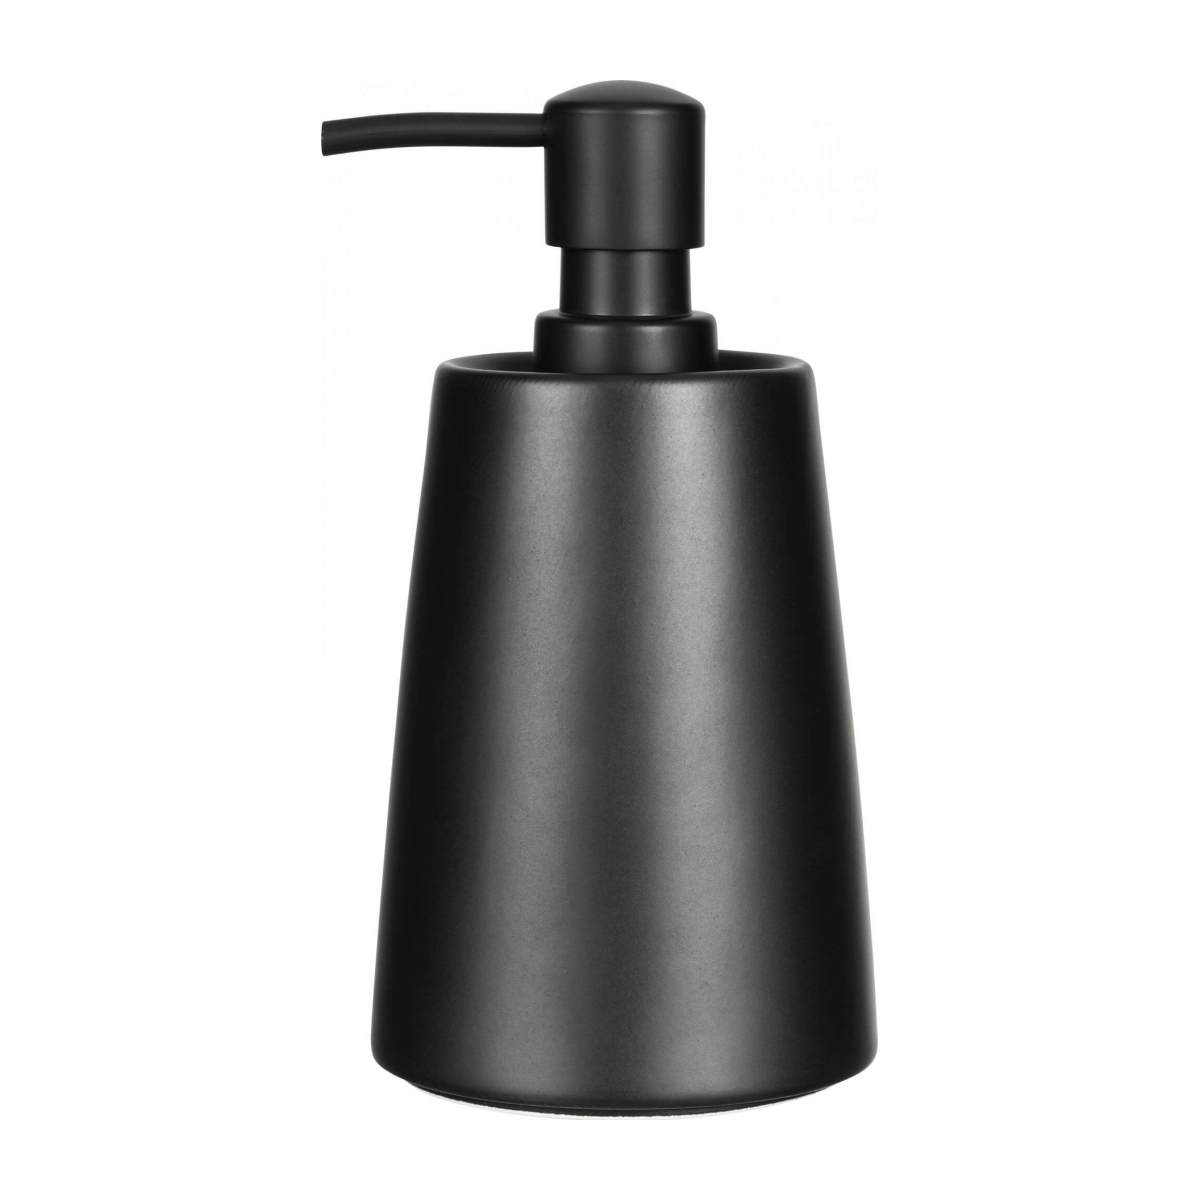 Soap Dispenser Black n°3